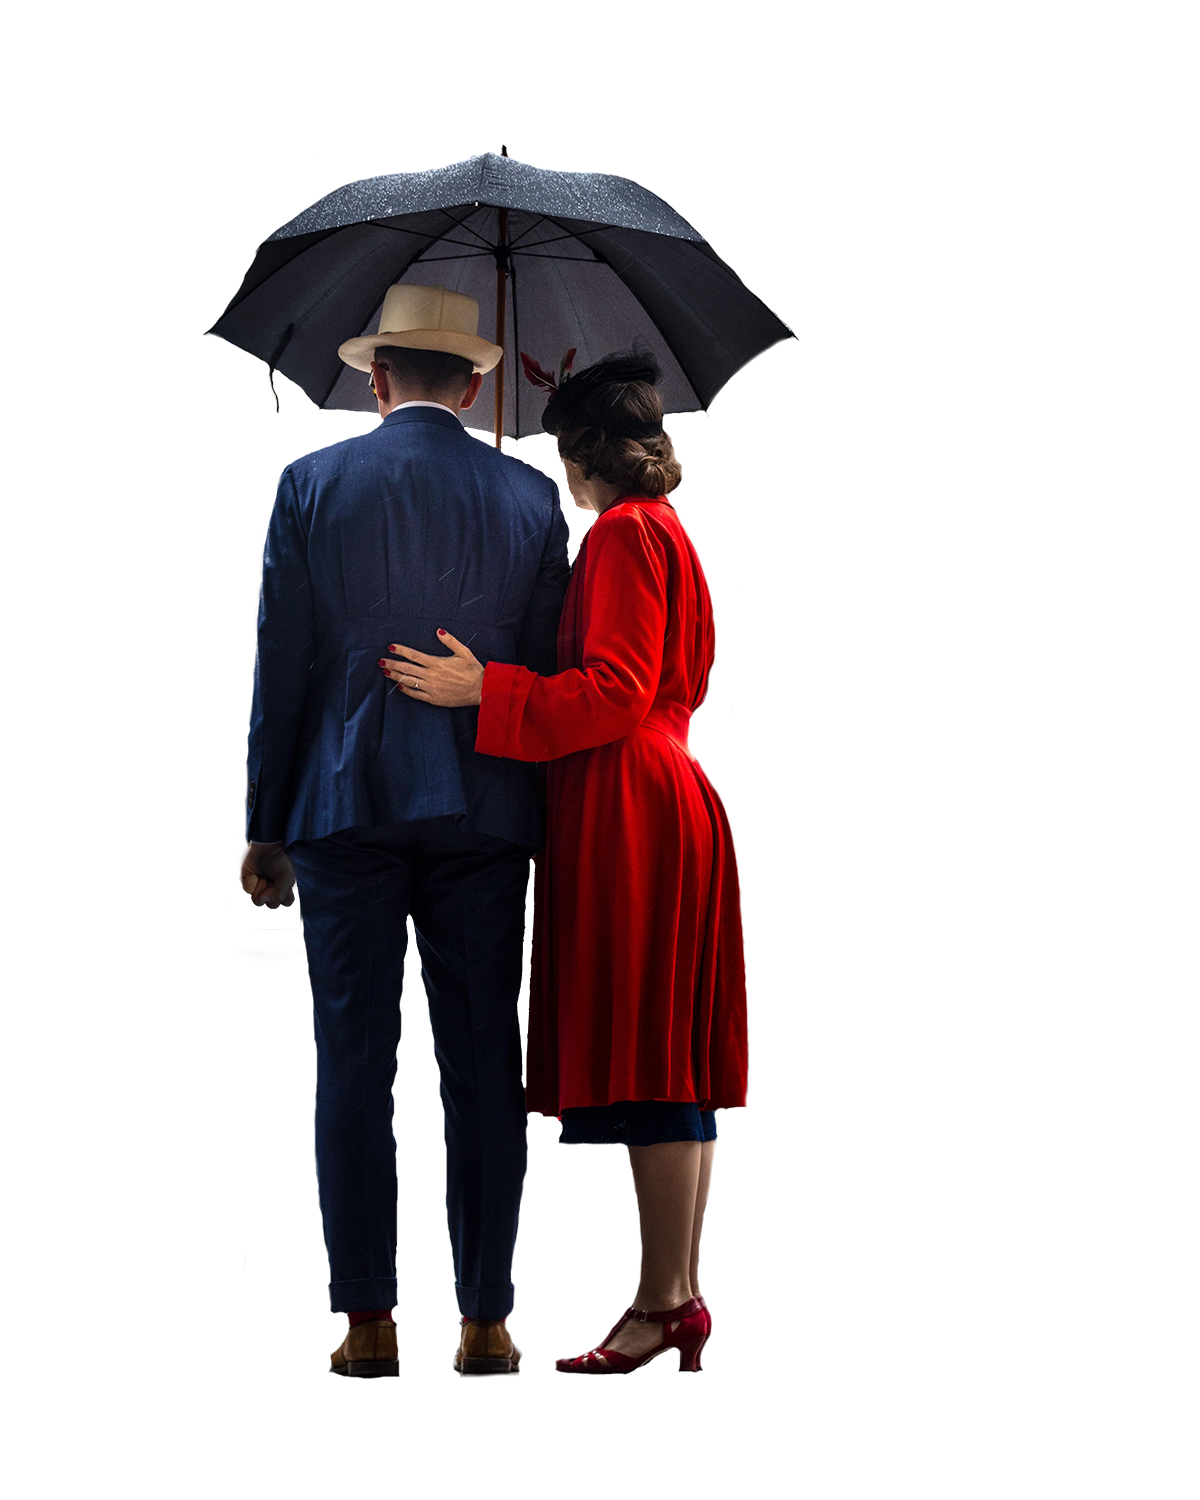 Couple Standing Under An Umbrella.